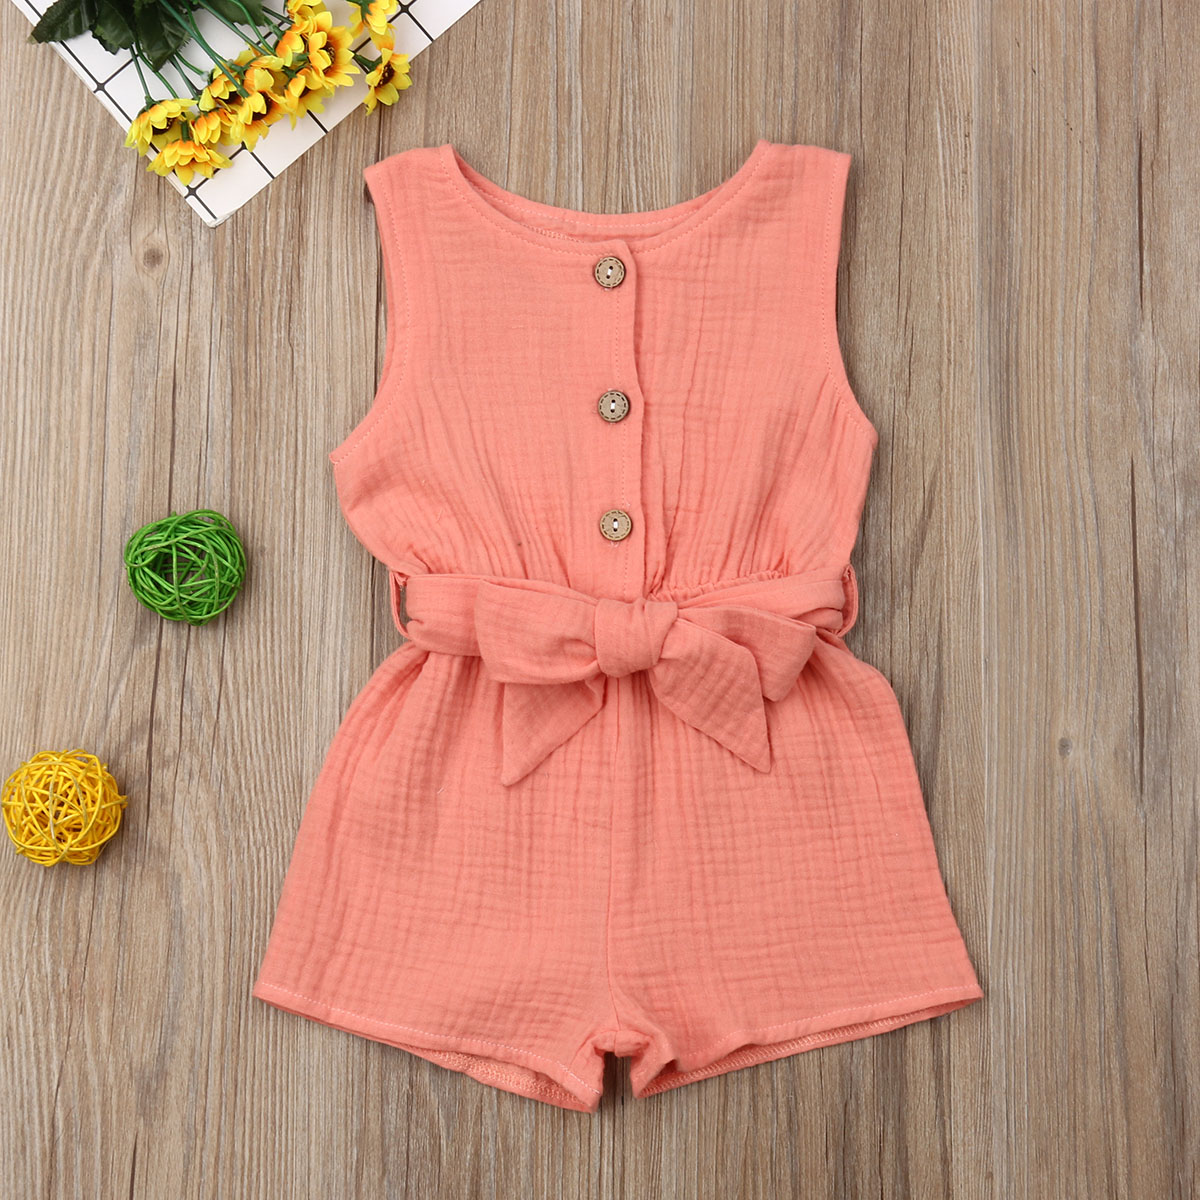 Pudcoco Summer Newborn Baby Girl Clothes Sleeveless Solid Color Cotton Bowknot Button   Romper   Jumpsuit One-Piece Outfit Summer